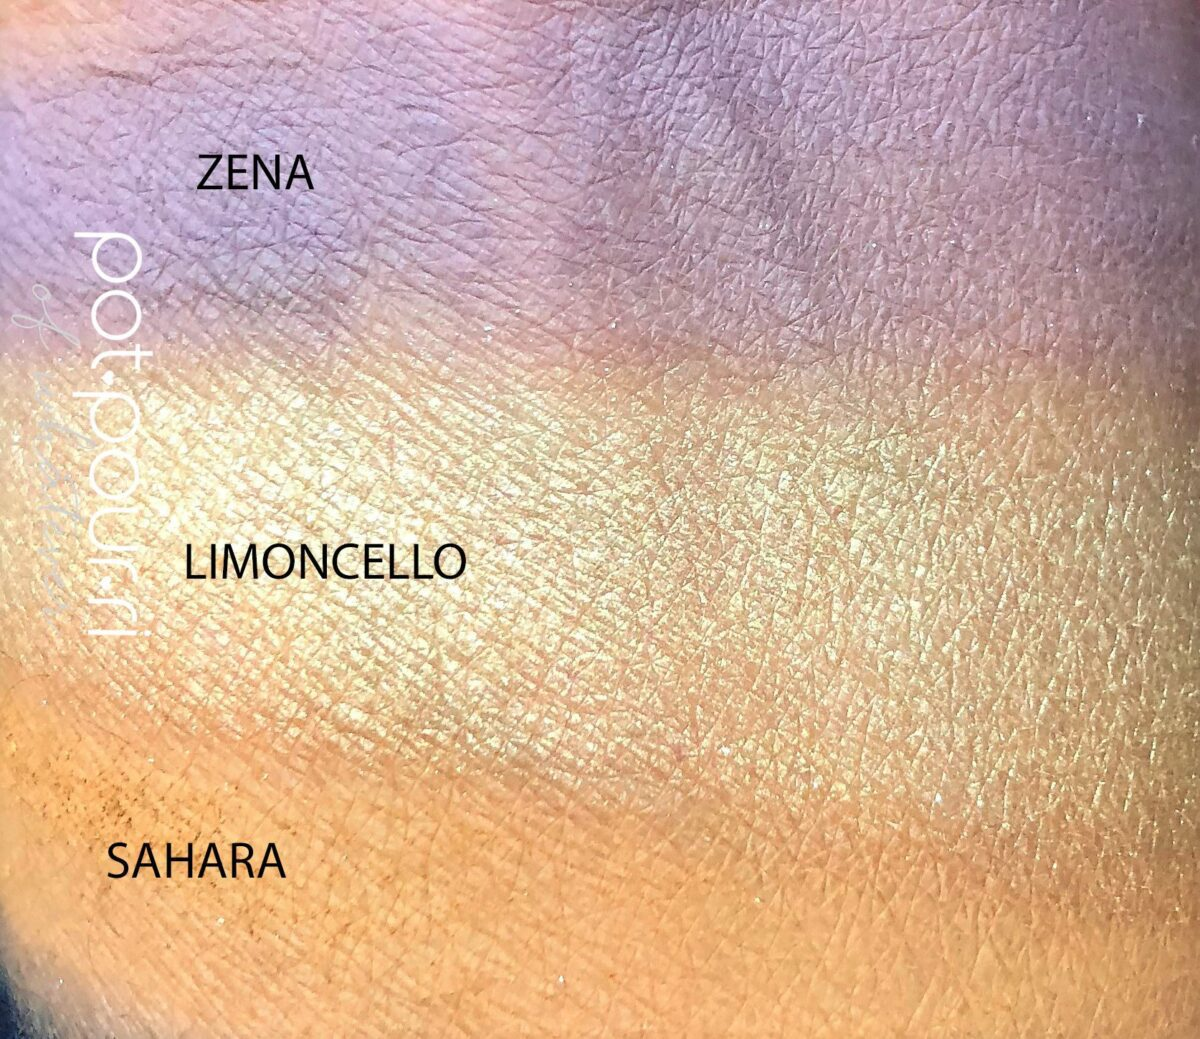 SWATCHES OF LOOK FIVE, SAHARA, LIMONCELLO AND ZENA